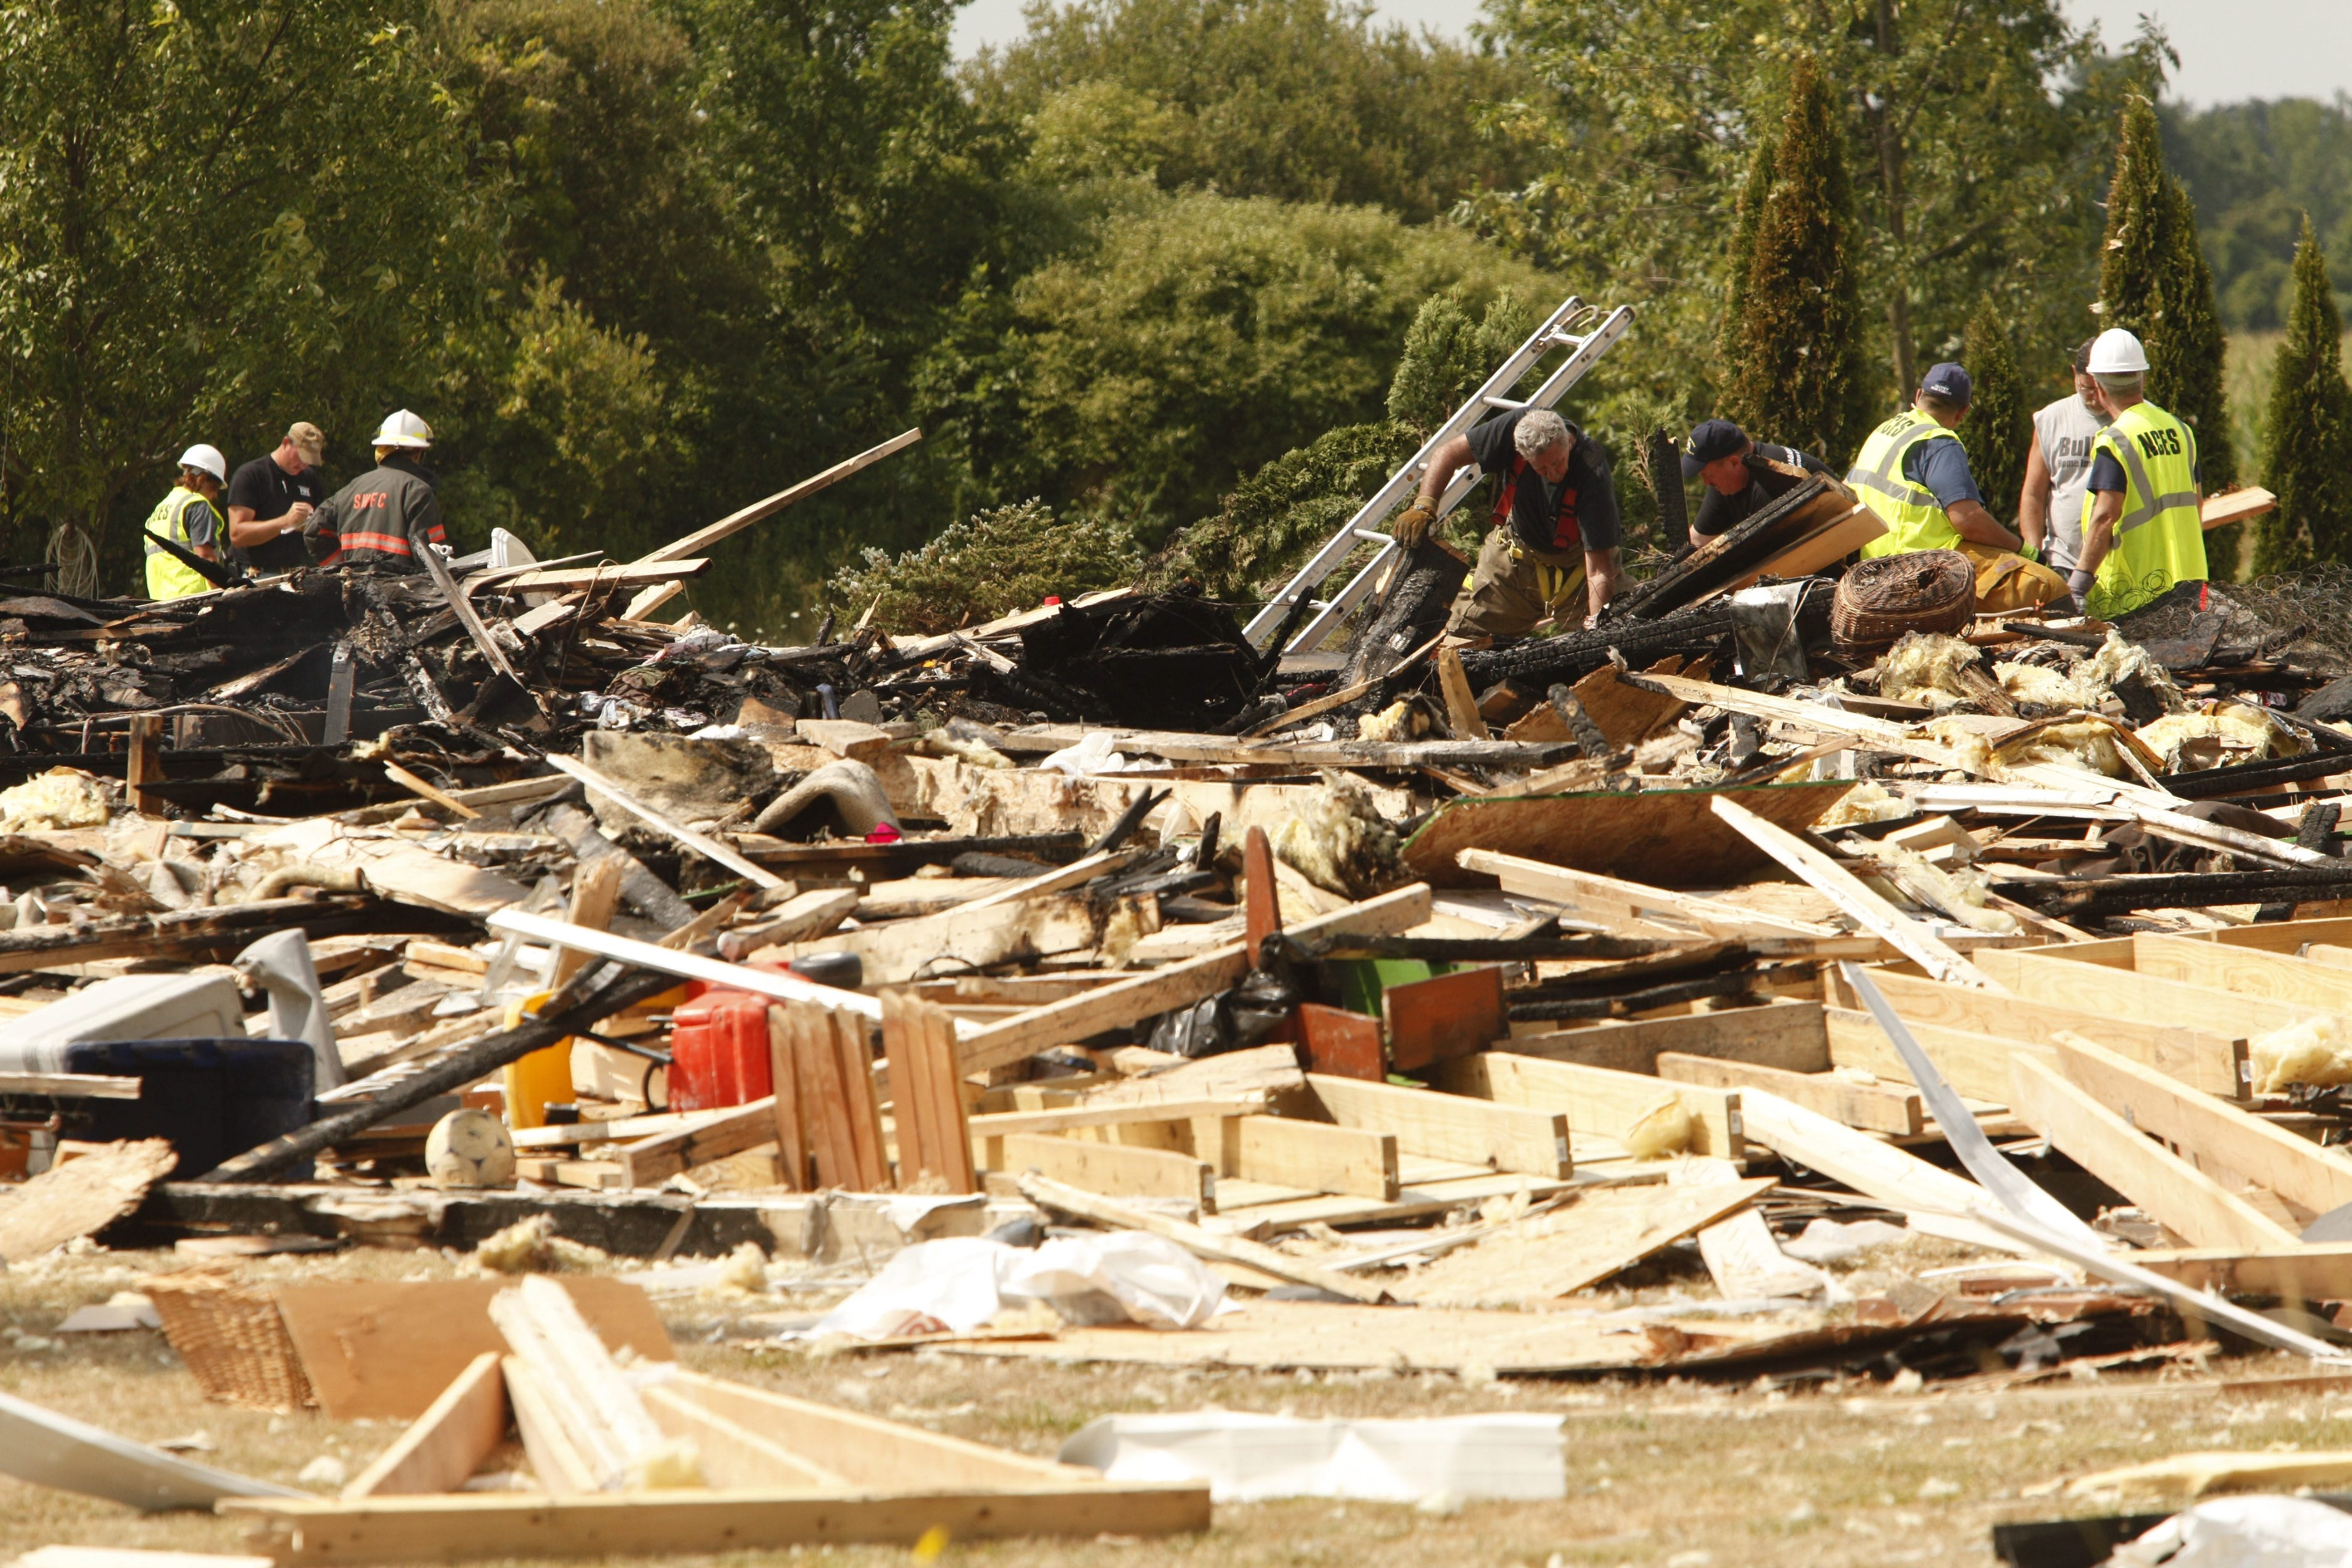 Police and fire officials investigate the scene of an explosion that killed Sarah Johnson, 14, and seriously injured four family members on Chestnut Road in Wilson, on July 24, 2012.